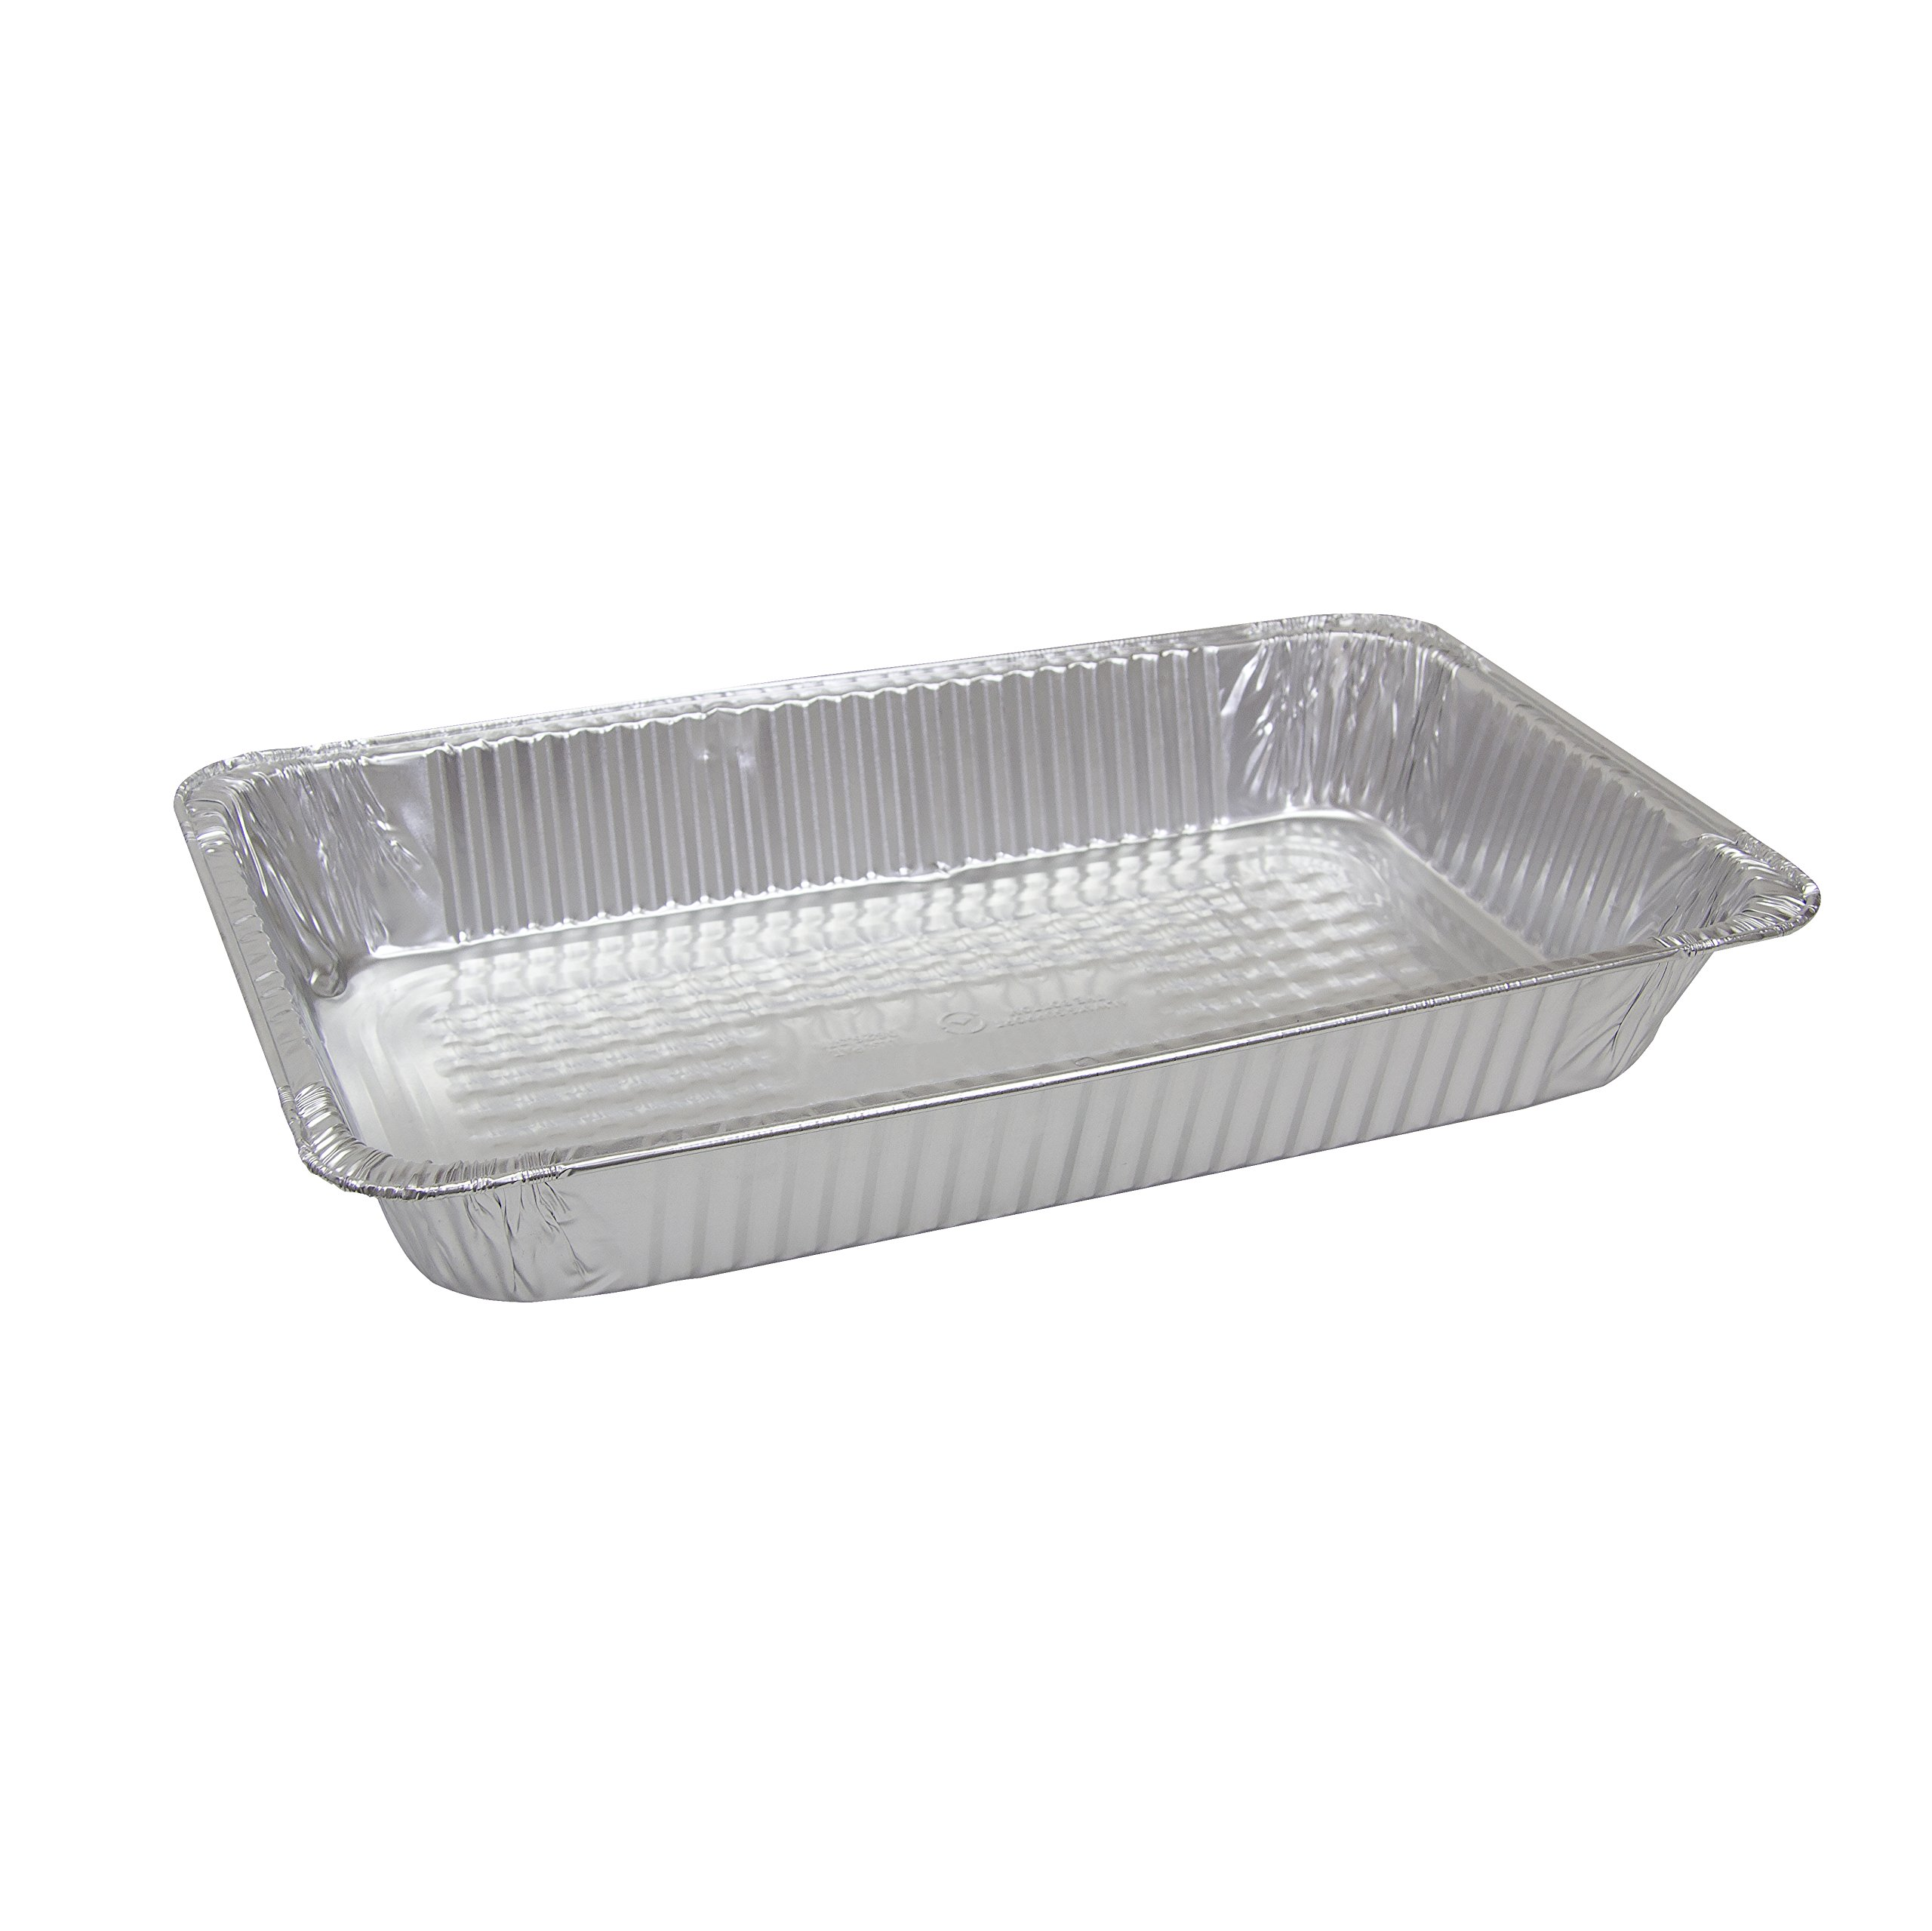 Empress E0458 Full Size Deep Foil Steam-Table Pan, 3-3/16'' x 12-13/16'' x 20-3/4'', 12.88'' Height, 13.1'' Width, 21.38'' Length (Pack of 50)